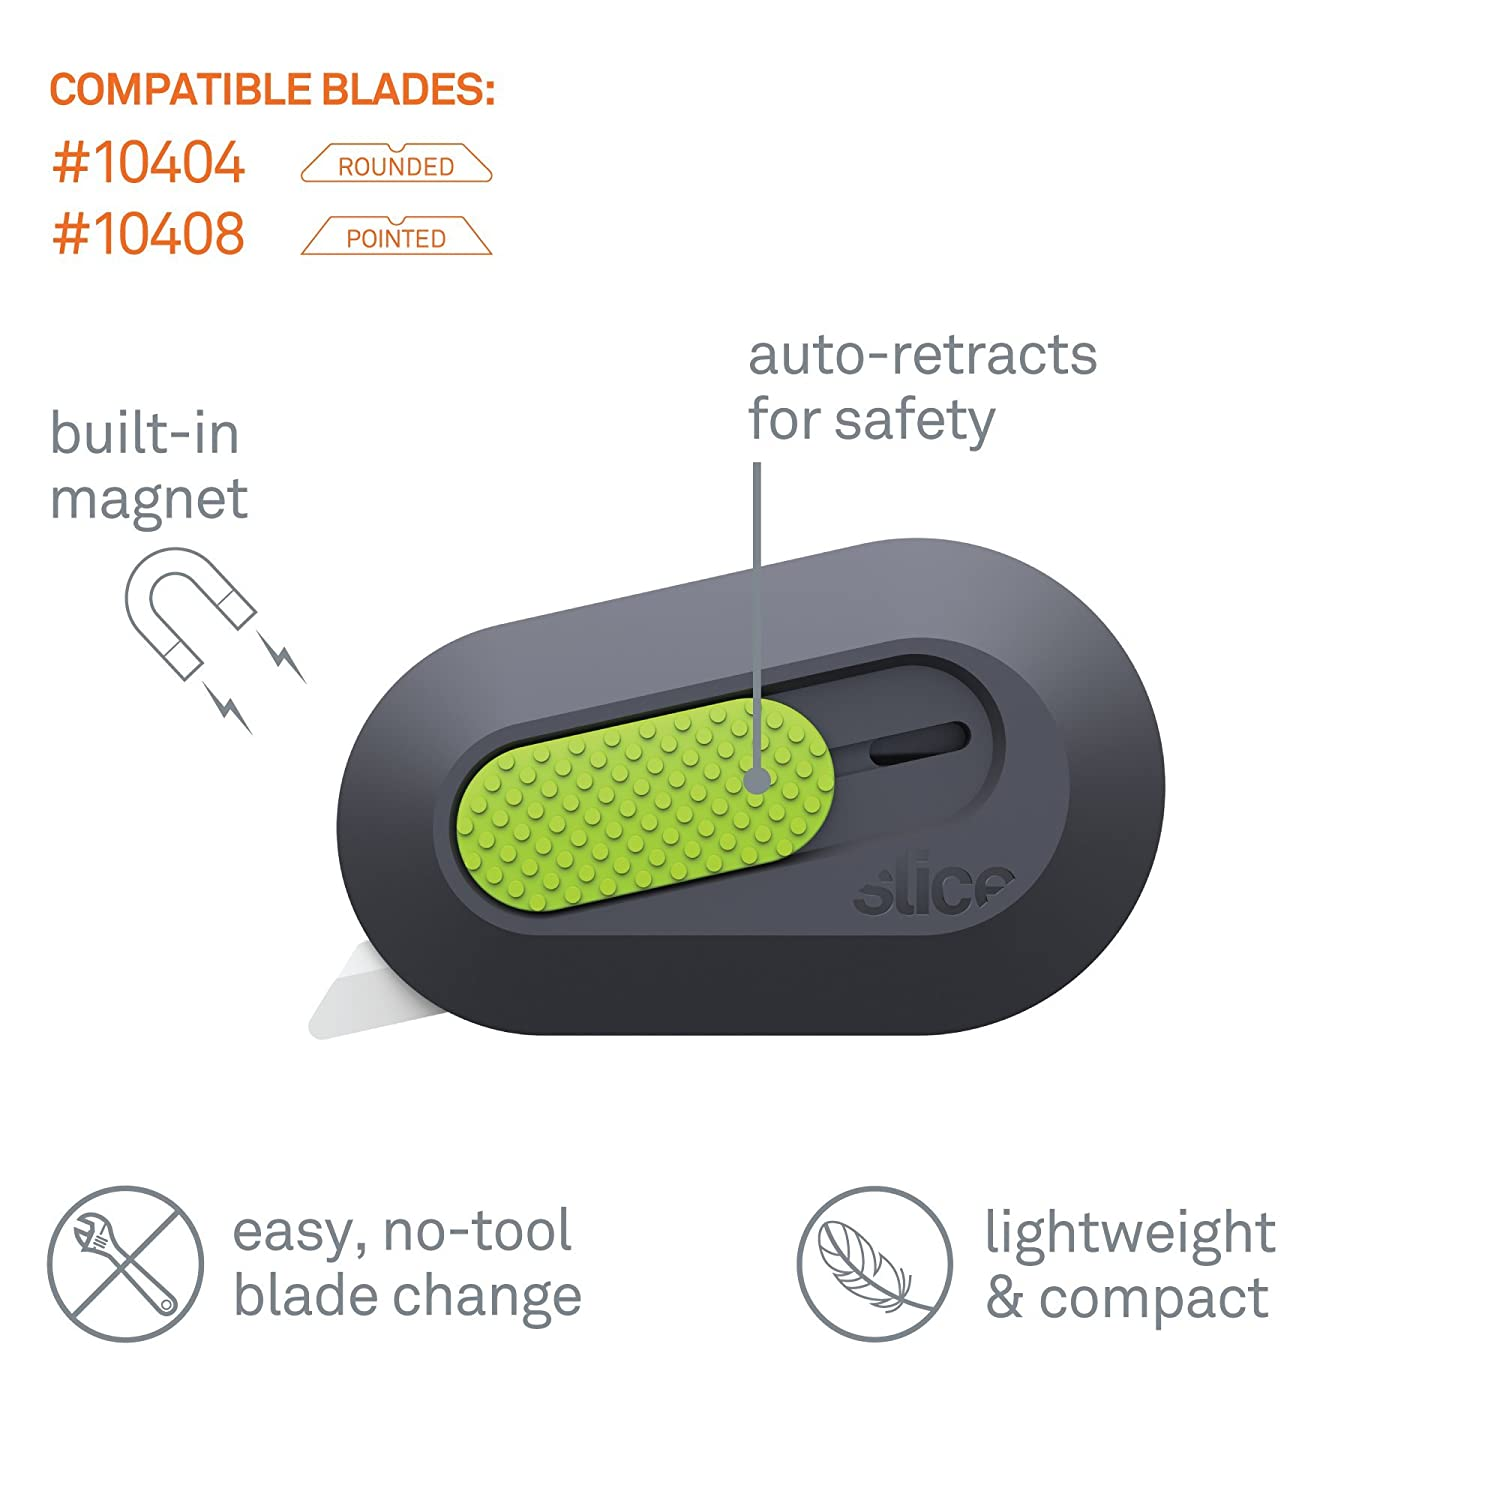 Keychain Box Opener Right or Left Handed Mini Cutter Magnetic Ceramic Blade Locks Into Position Slice 10515 Mini Box Cutter